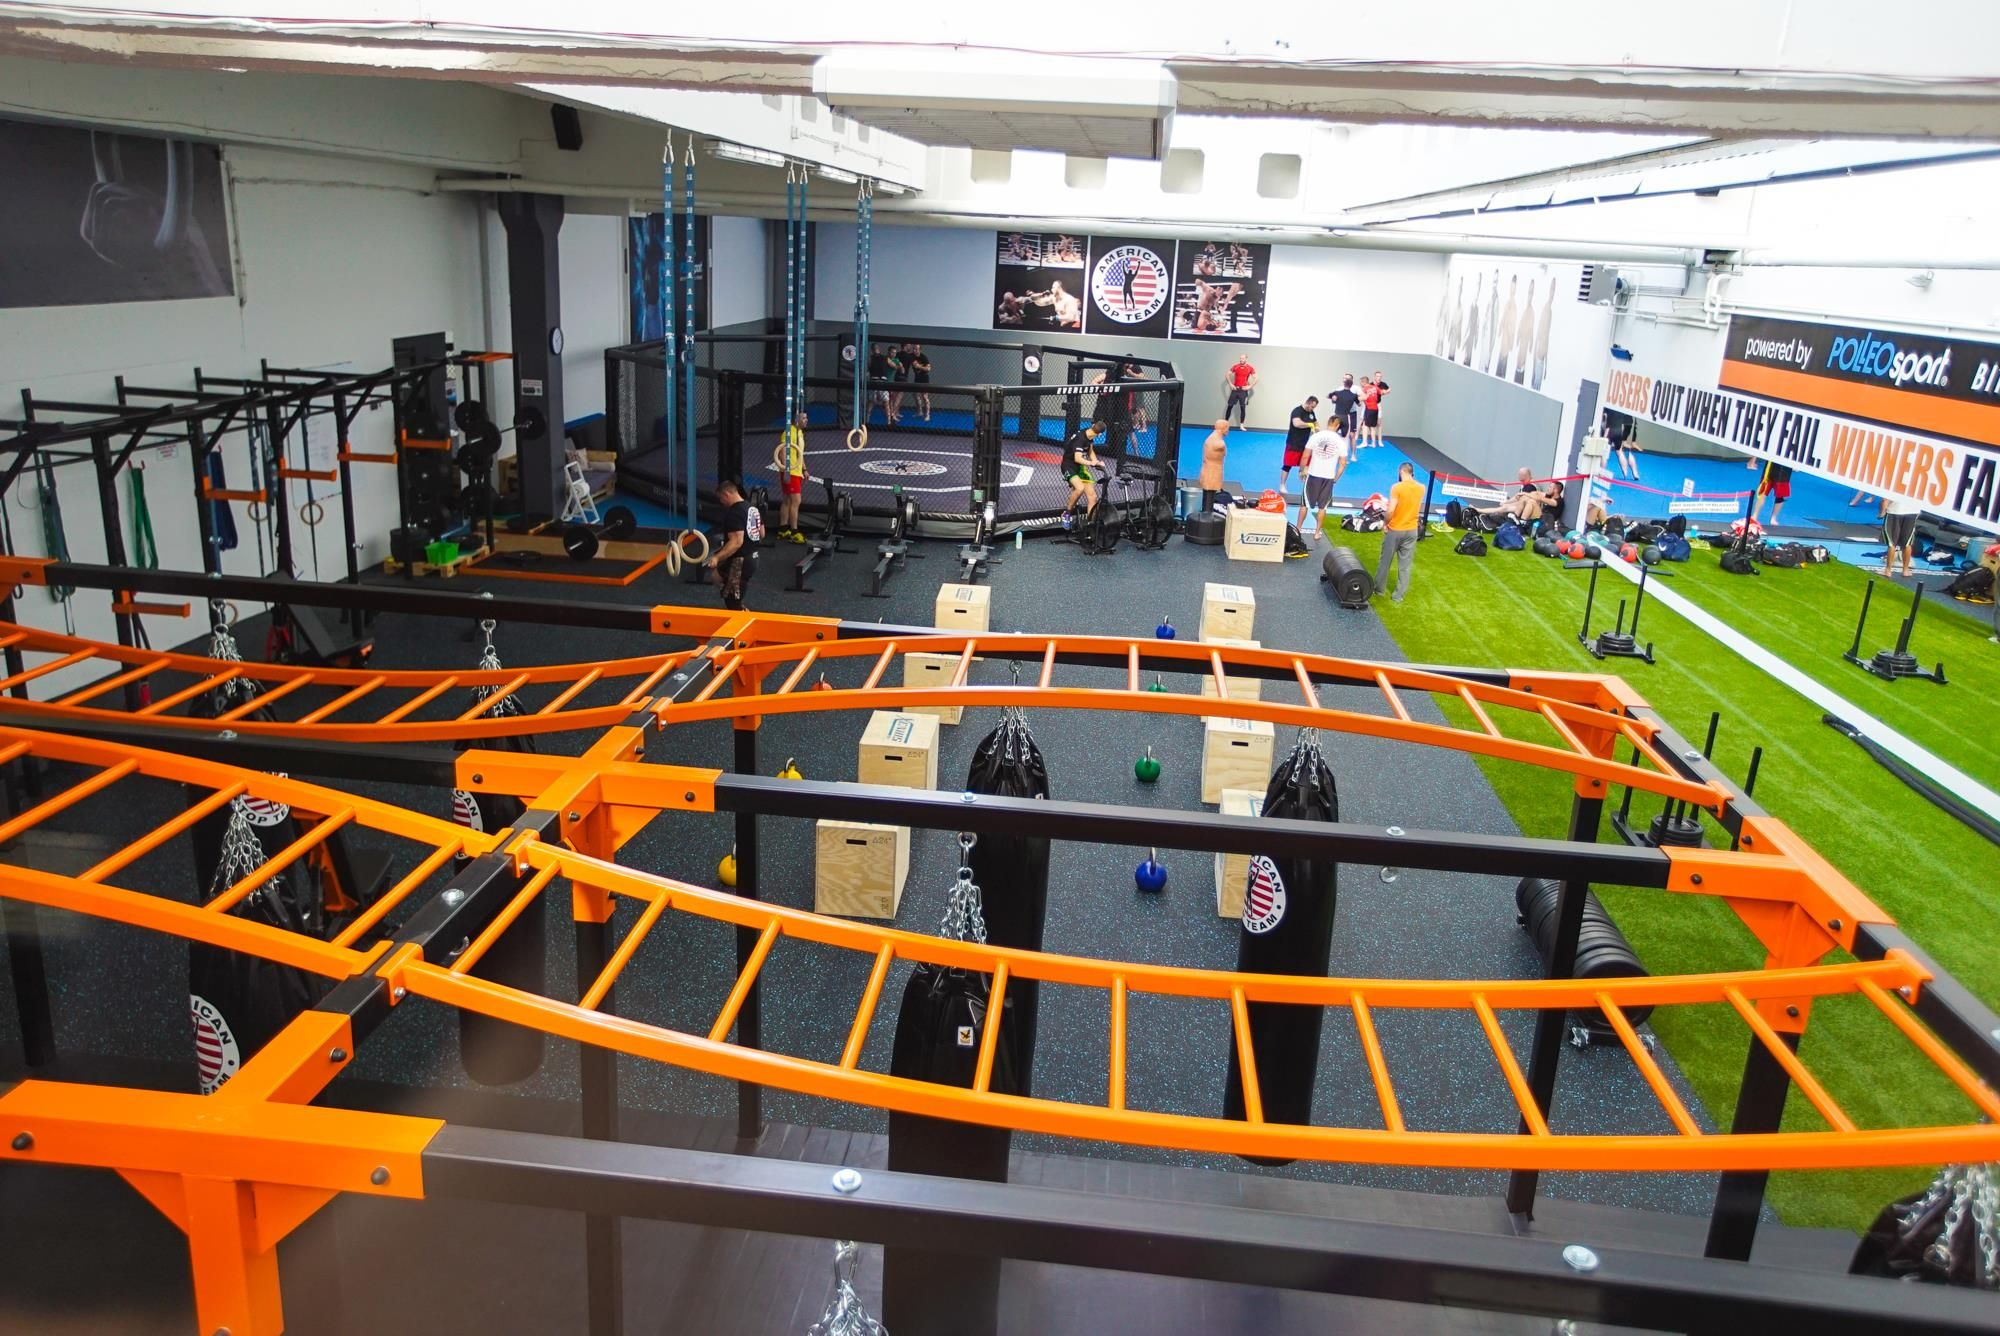 American top team mma gym in zagreb croatia workout rooms gym